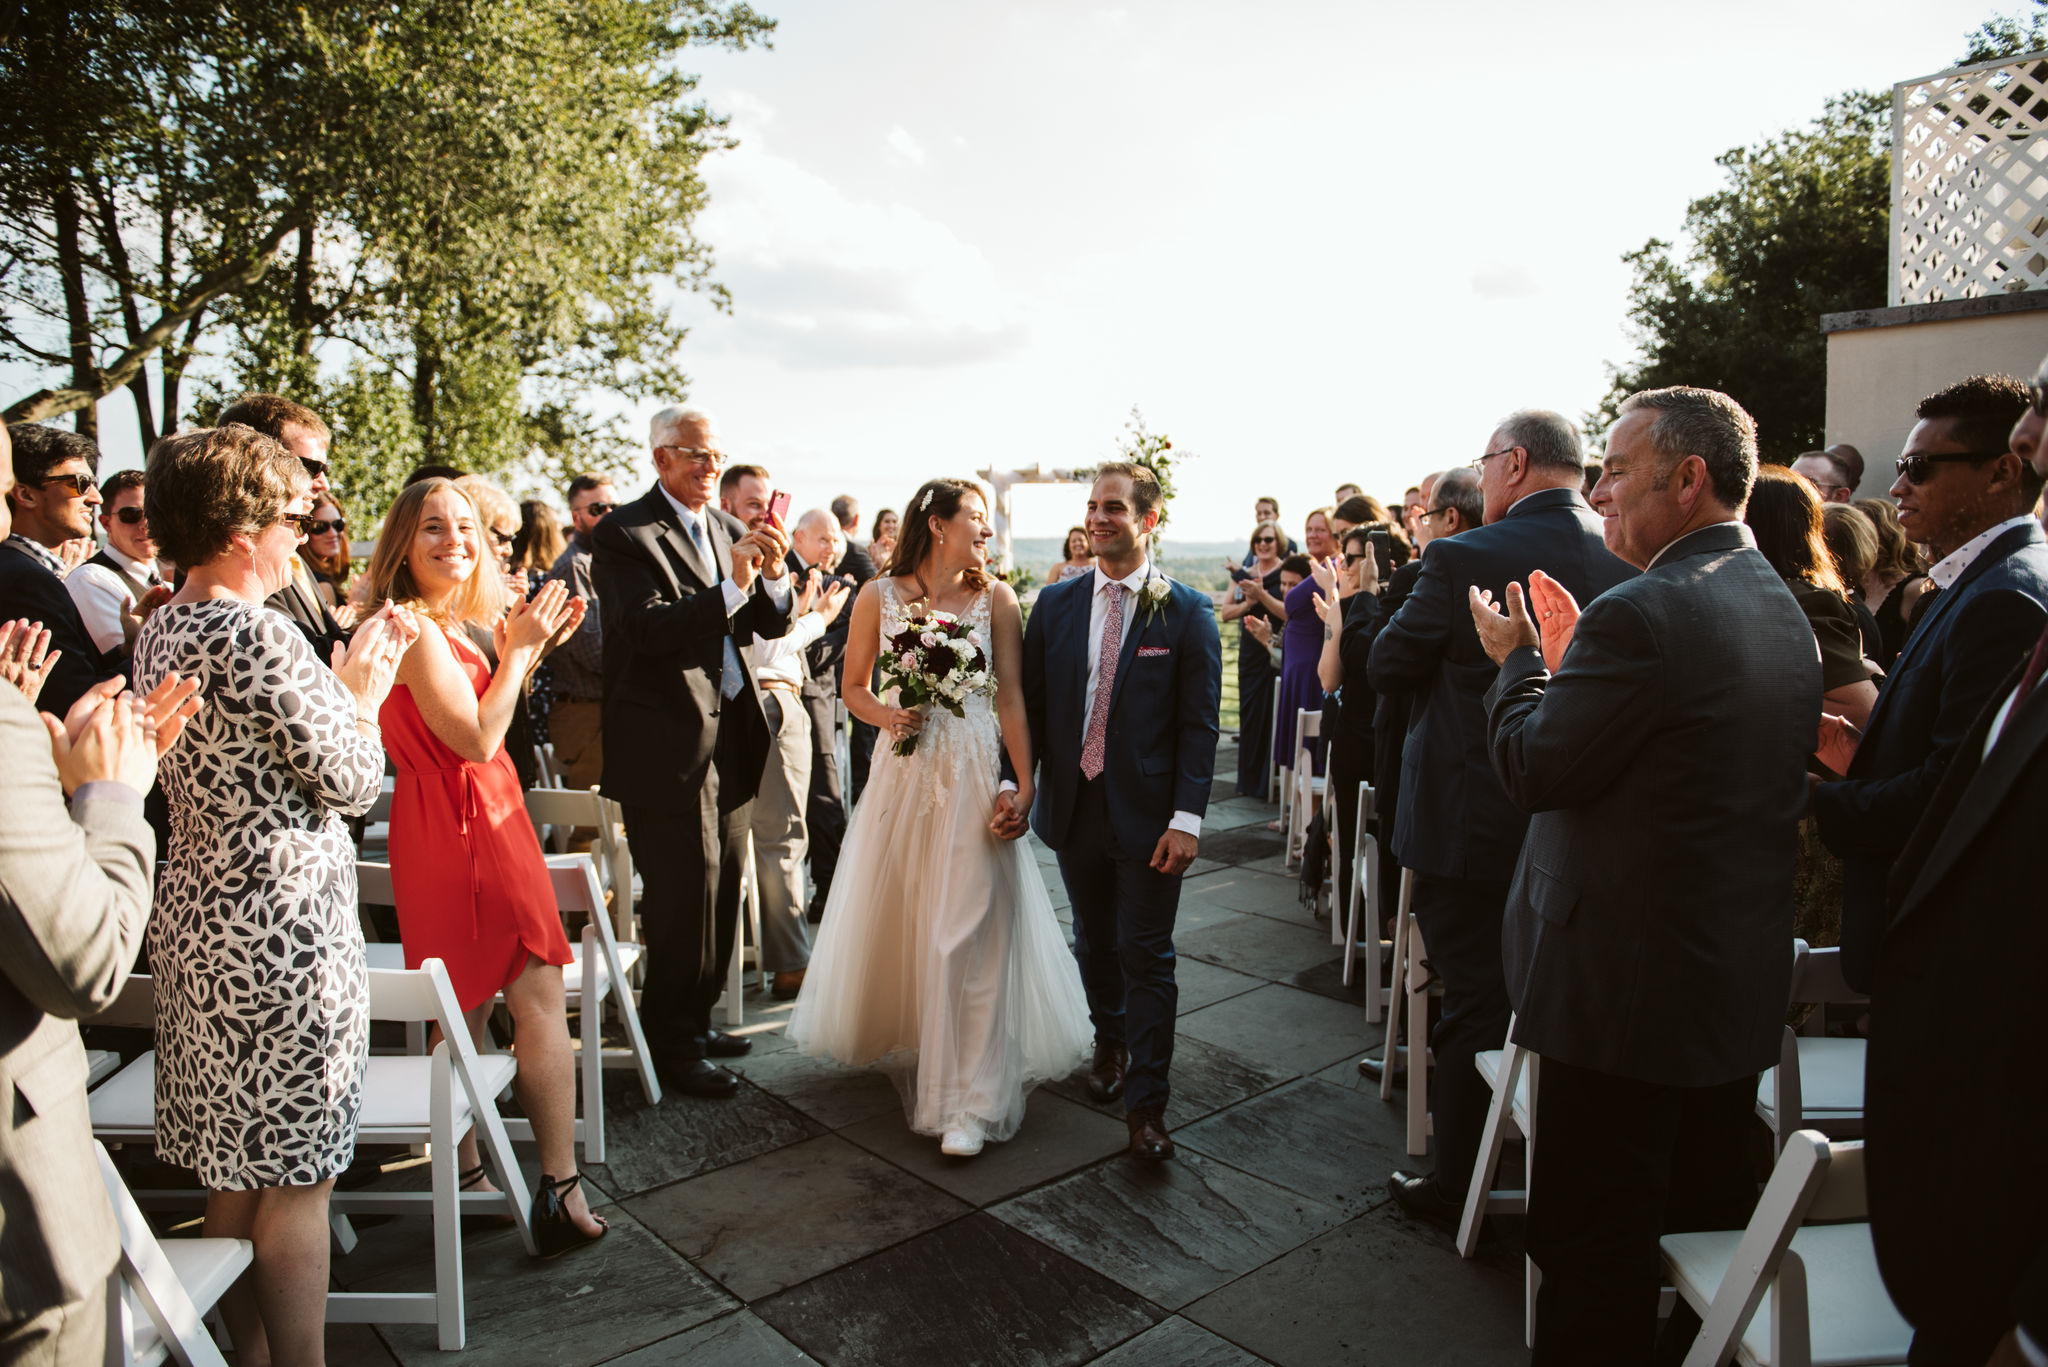 Phoenix Maryland, Baltimore Wedding Photographer, Eagle's Nest Country Club, Classic, Romantic, Spring, Bride and Groom Walking Down Aisle with Friends Cheering, Just Married, Outdoor Ceremony